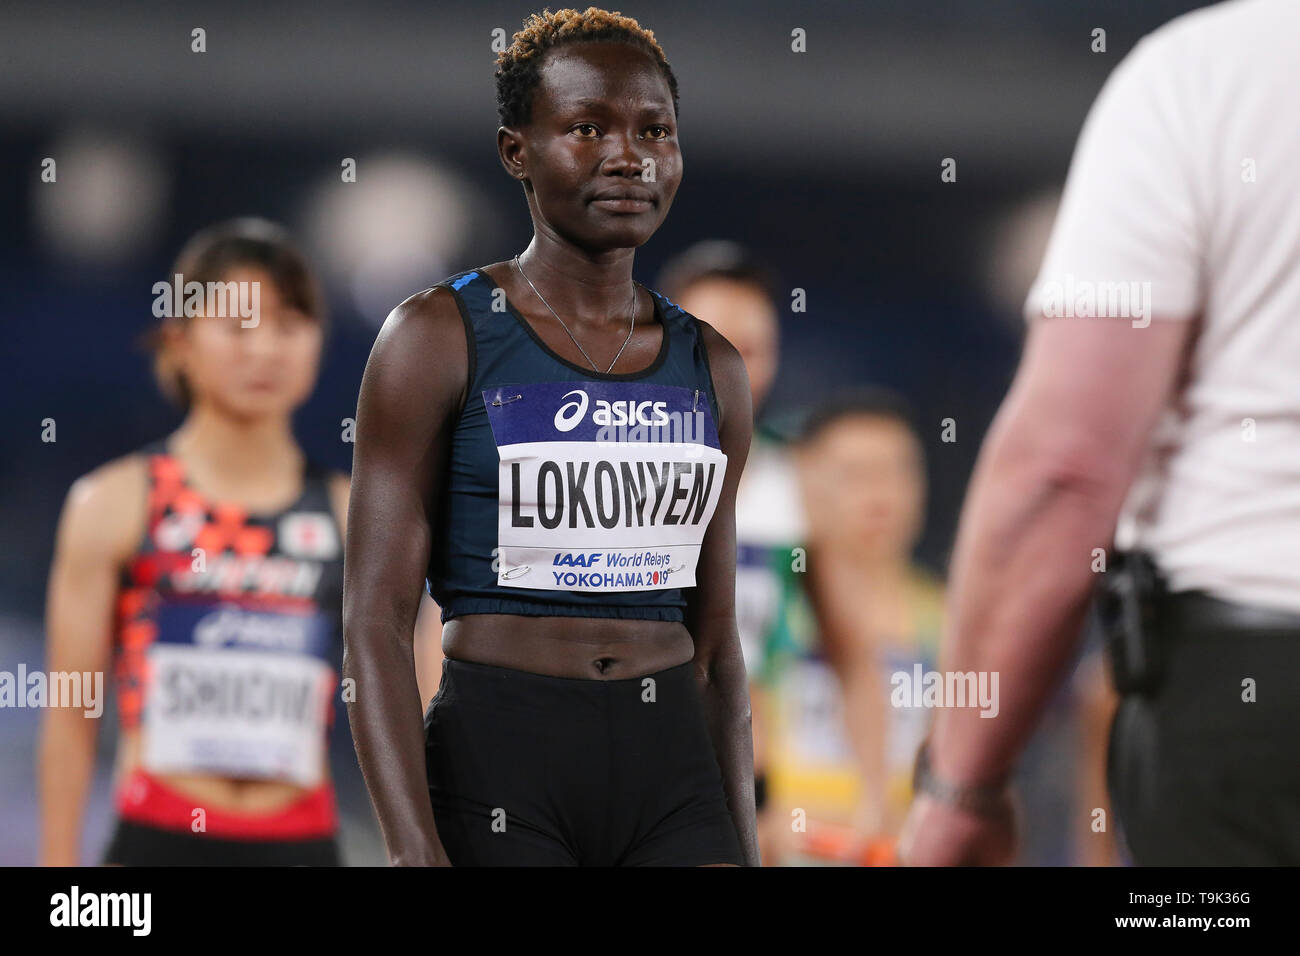 YOKOHAMA, JAPAN - MAY 10: Rose Nathike Lokonyen of the Athlete Refugee Team during Day 1 of the 2019 IAAF World Relay Championships at the Nissan Stadium on Saturday May 11, 2019 in Yokohama, Japan. (Photo by Roger Sedres for the IAAF) - Stock Image